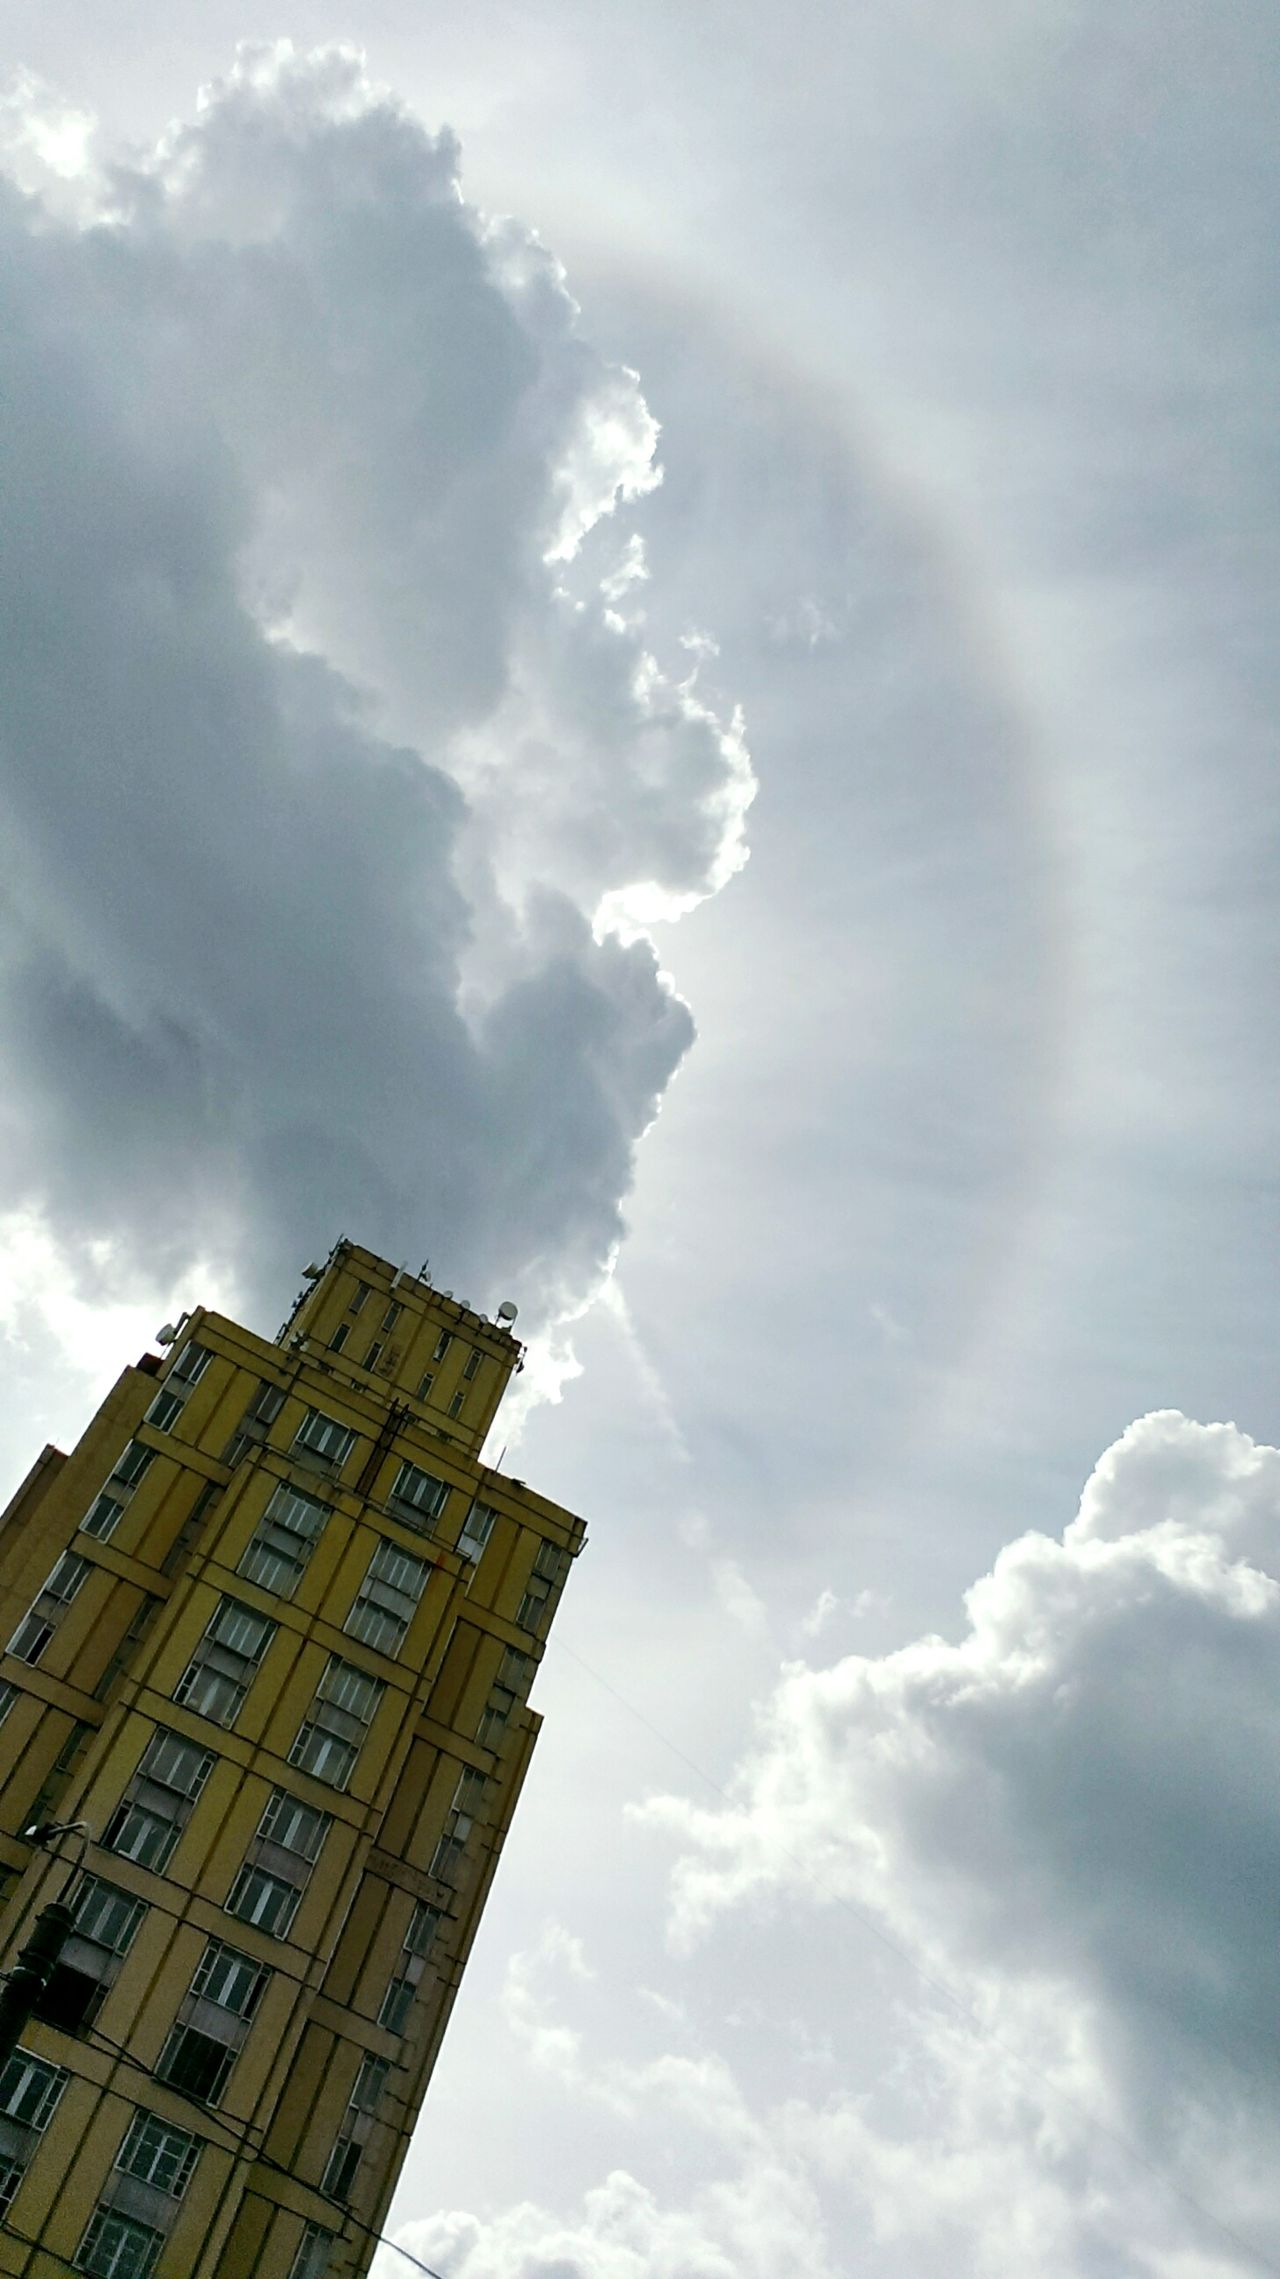 Nimbus Weather Phenomenon Weather Photography Rainbow Halo Eyeem Streetphotography Street Photography Sky Skyscraper Arhitecture Clouds Element Moment Landscape_Collection Air 43 Golden Moments Edit Photo Showcase July